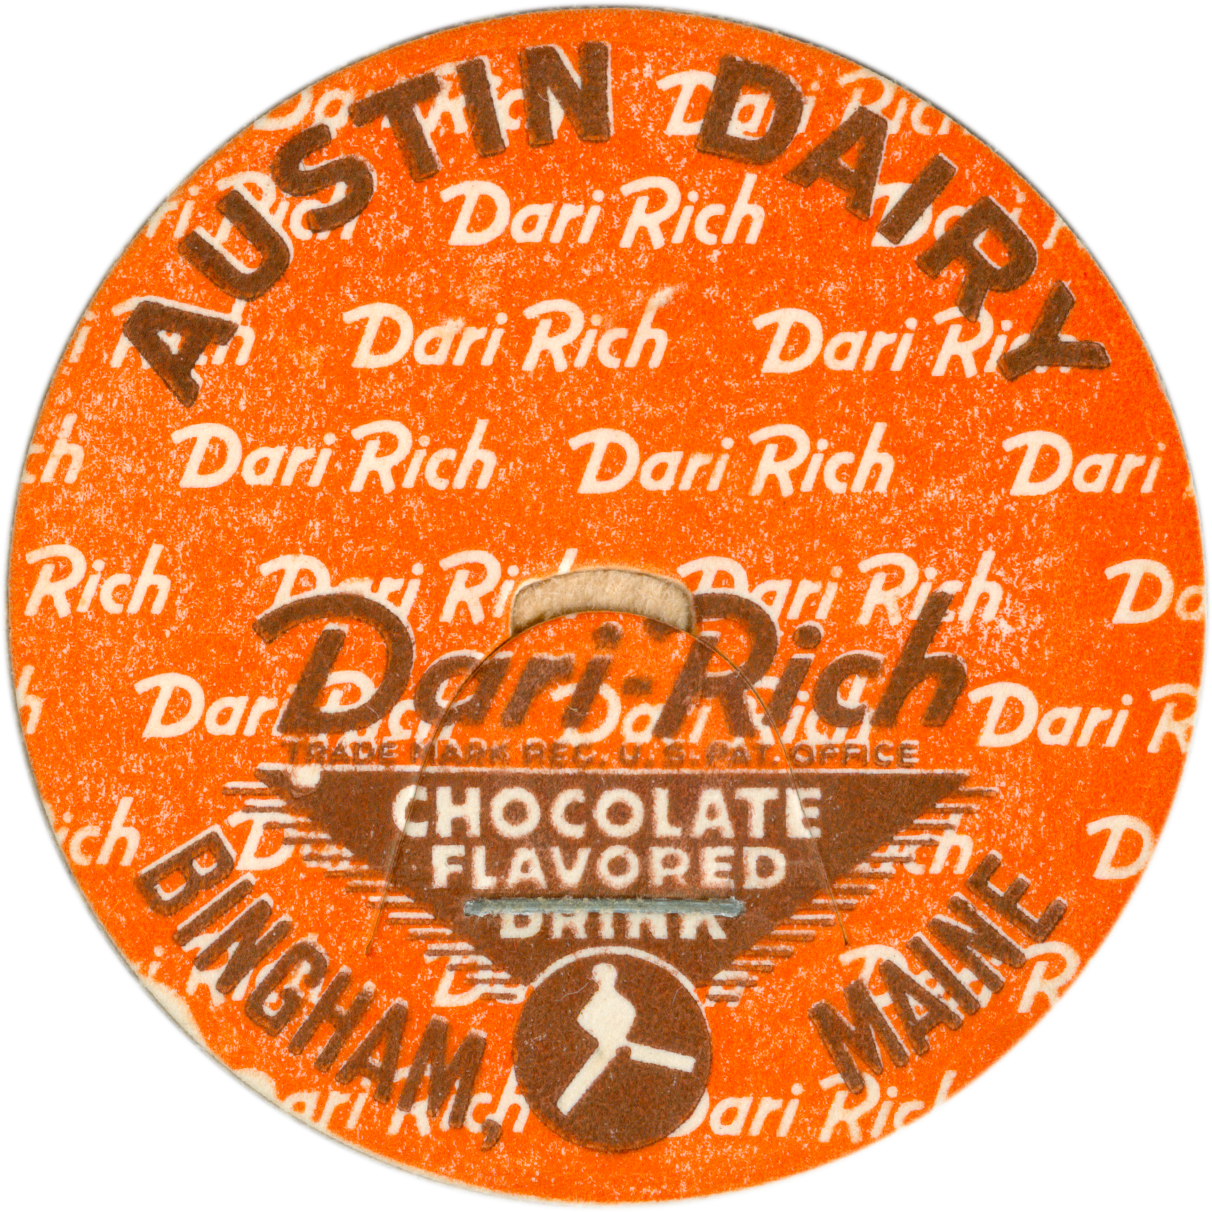 VernacularCircles__0001s_0025_Austin-Dairy---Dari-Rich-Chocolate-Flavored-Drink.png